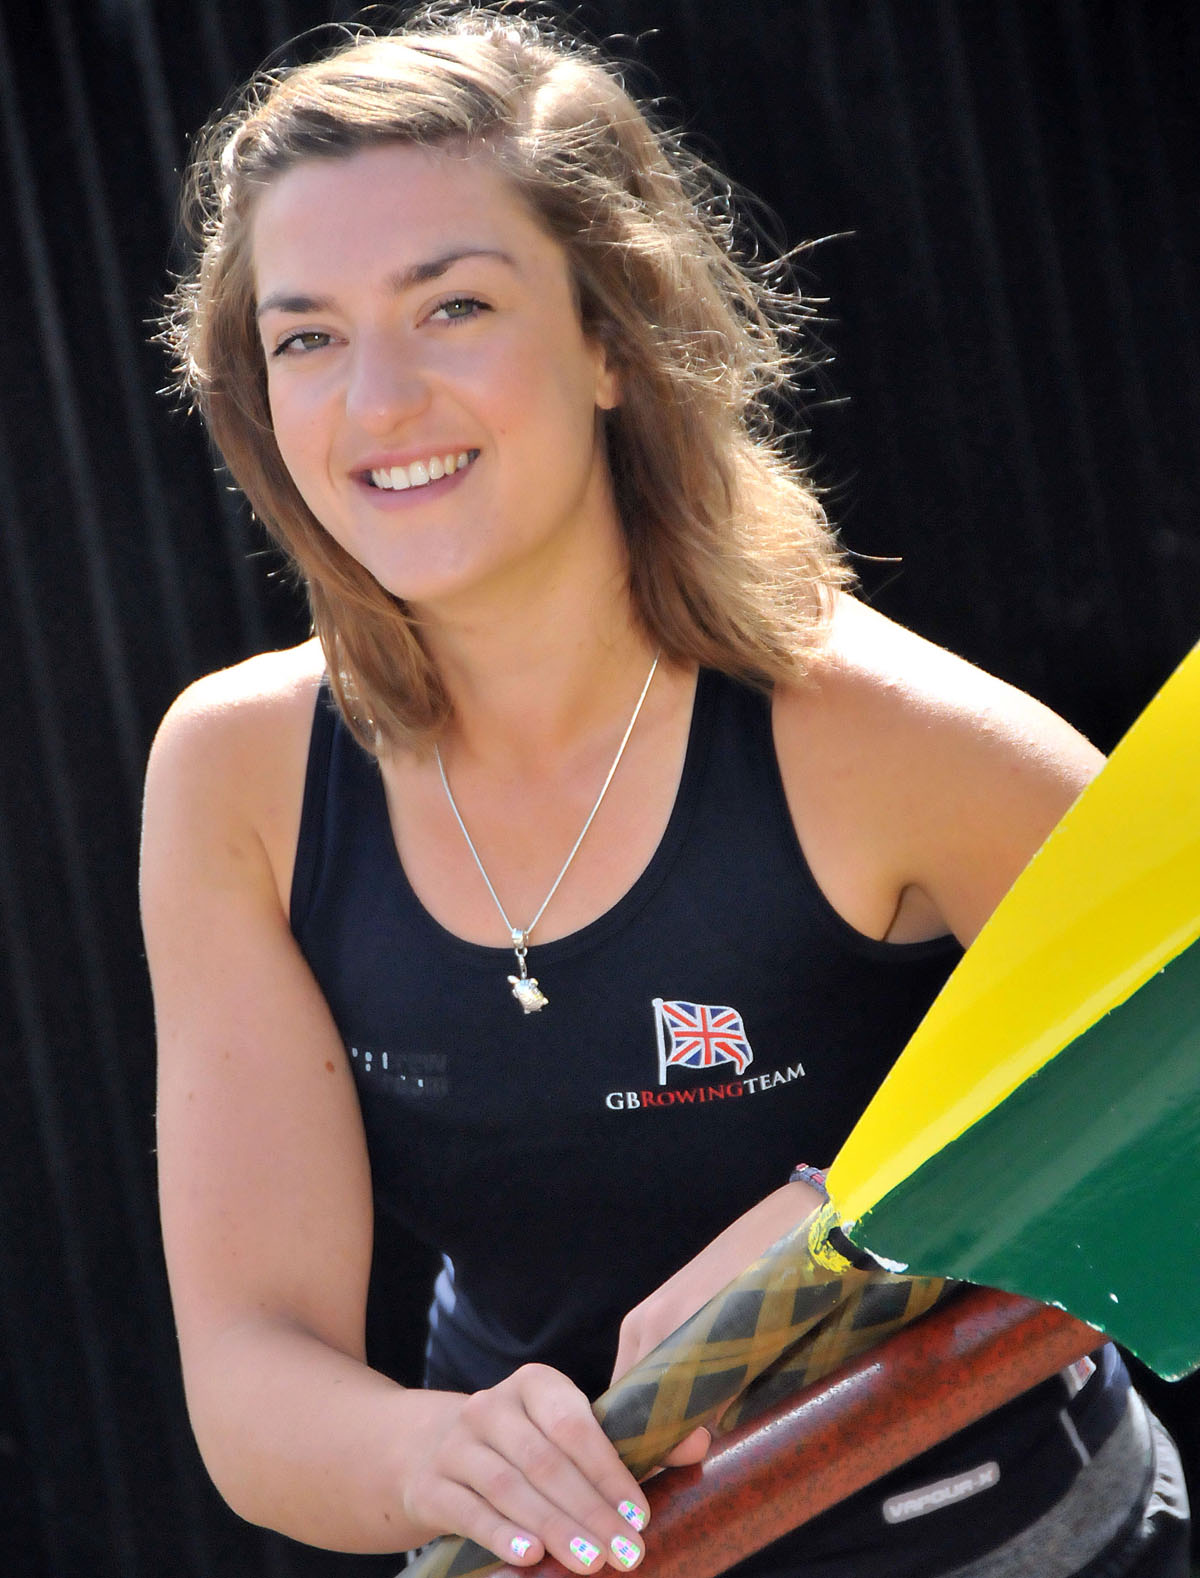 Northwich Rowing Club's Lucy Burgess races in Amsterdam this weekend